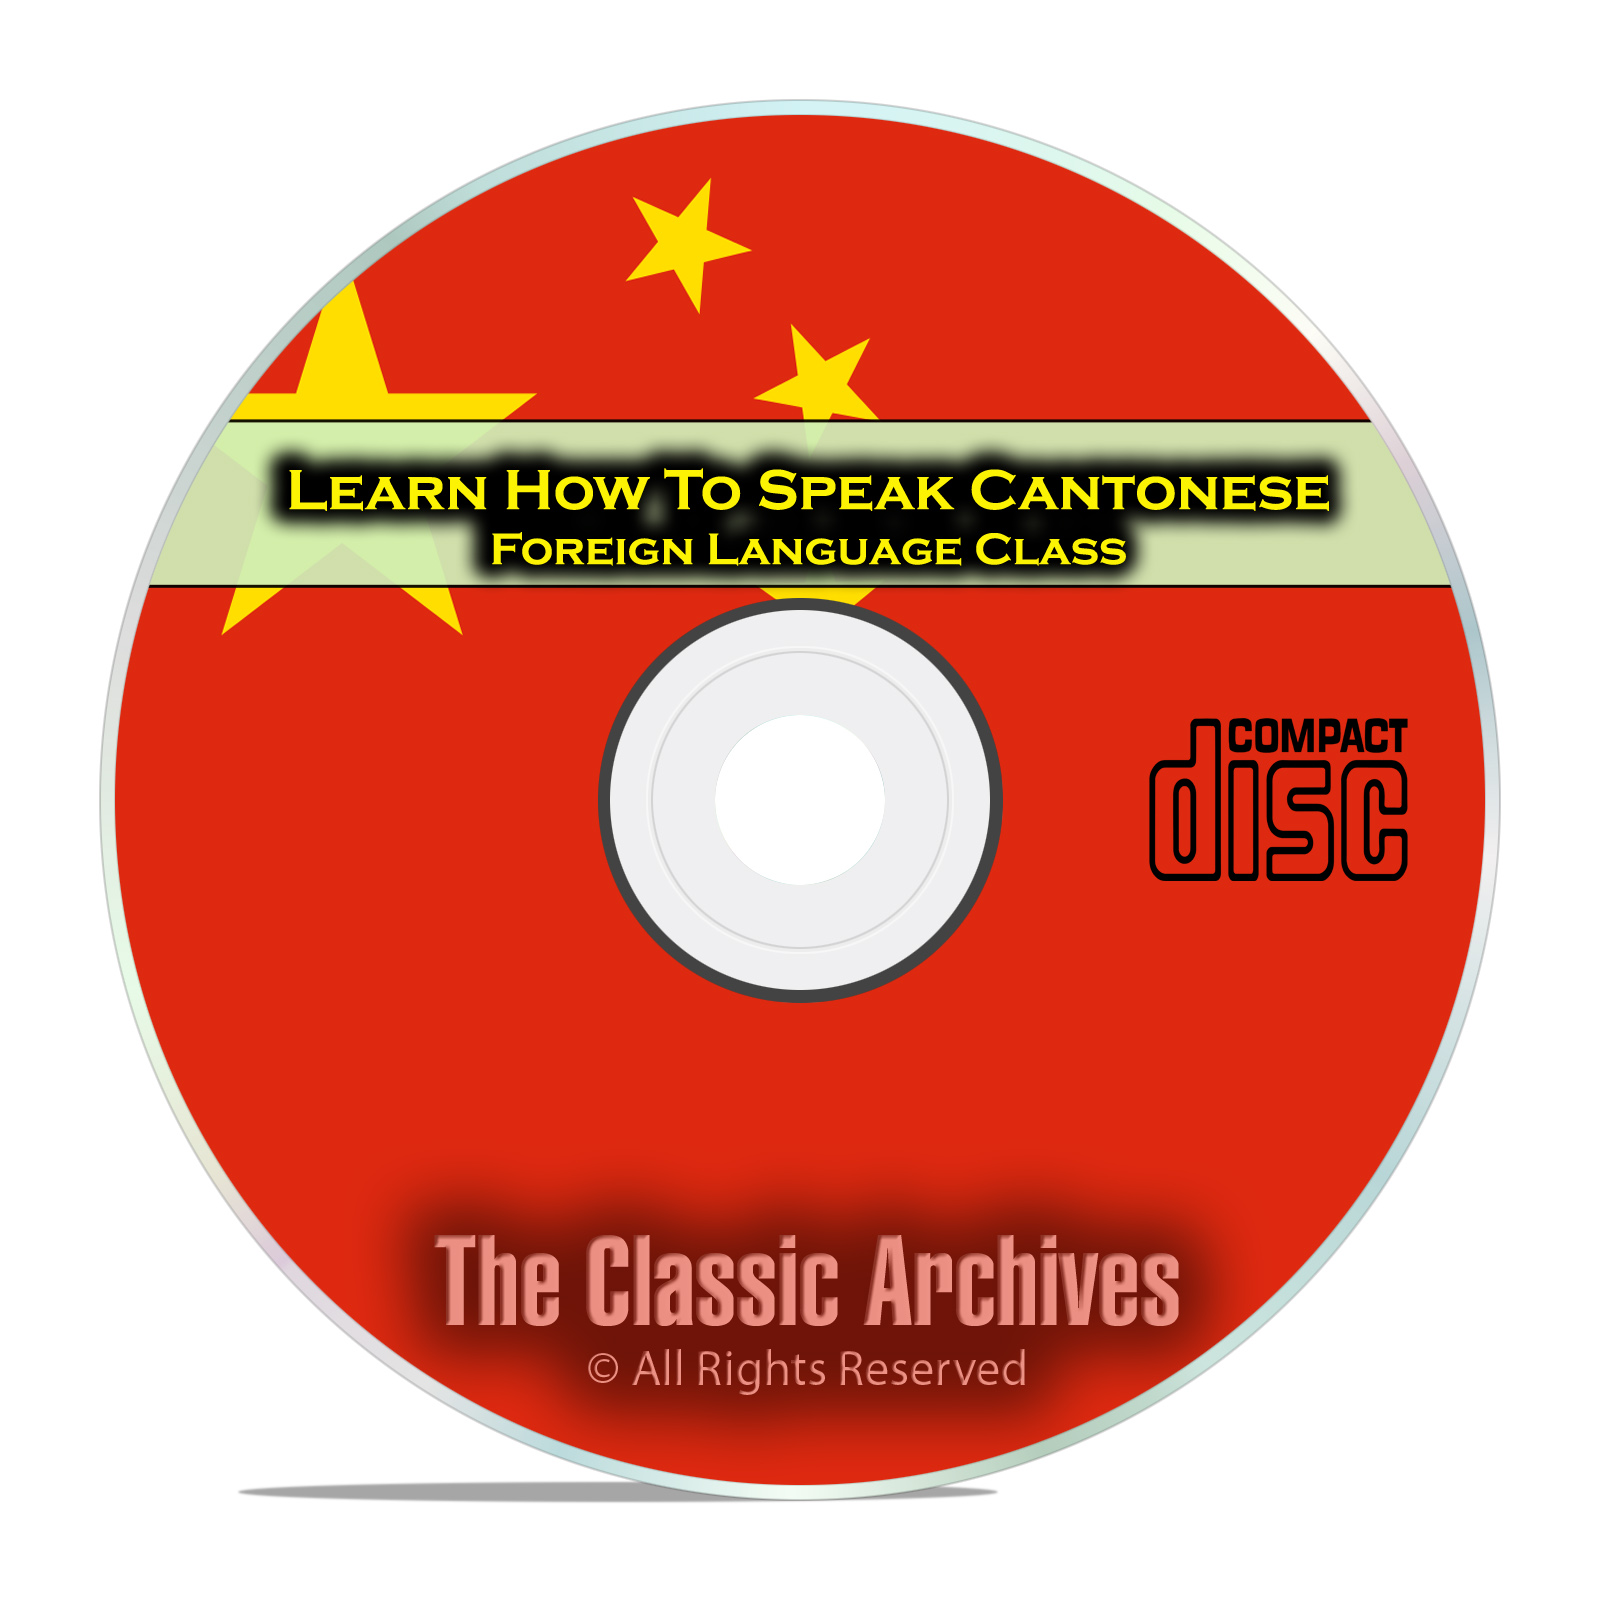 Learn How To Speak Cantonese, Fast Foreign Language Training Course, CD